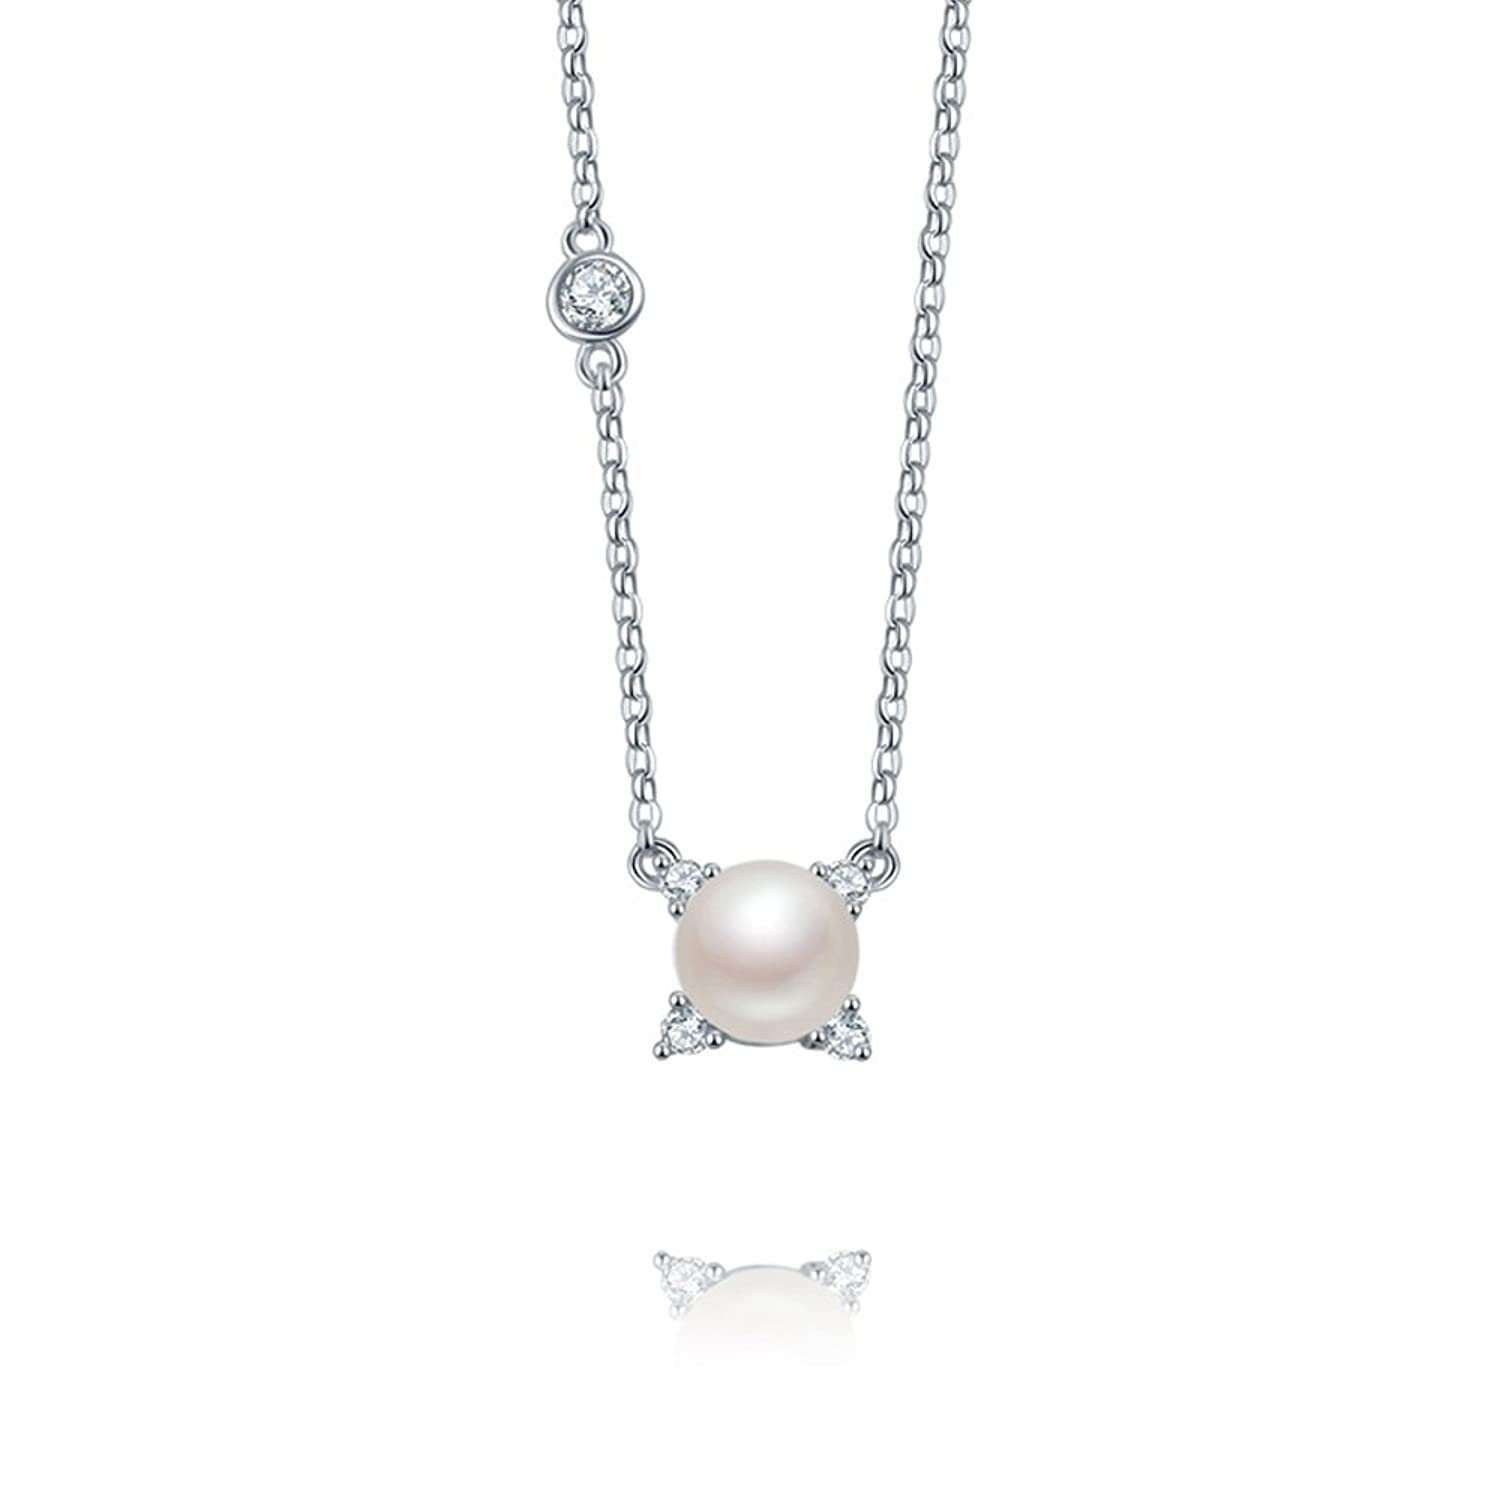 """Simple Charm""925 Sterling Silver Collarbone Necklace Pandent 16""-18"" with 8mm Freshwater Pearl"